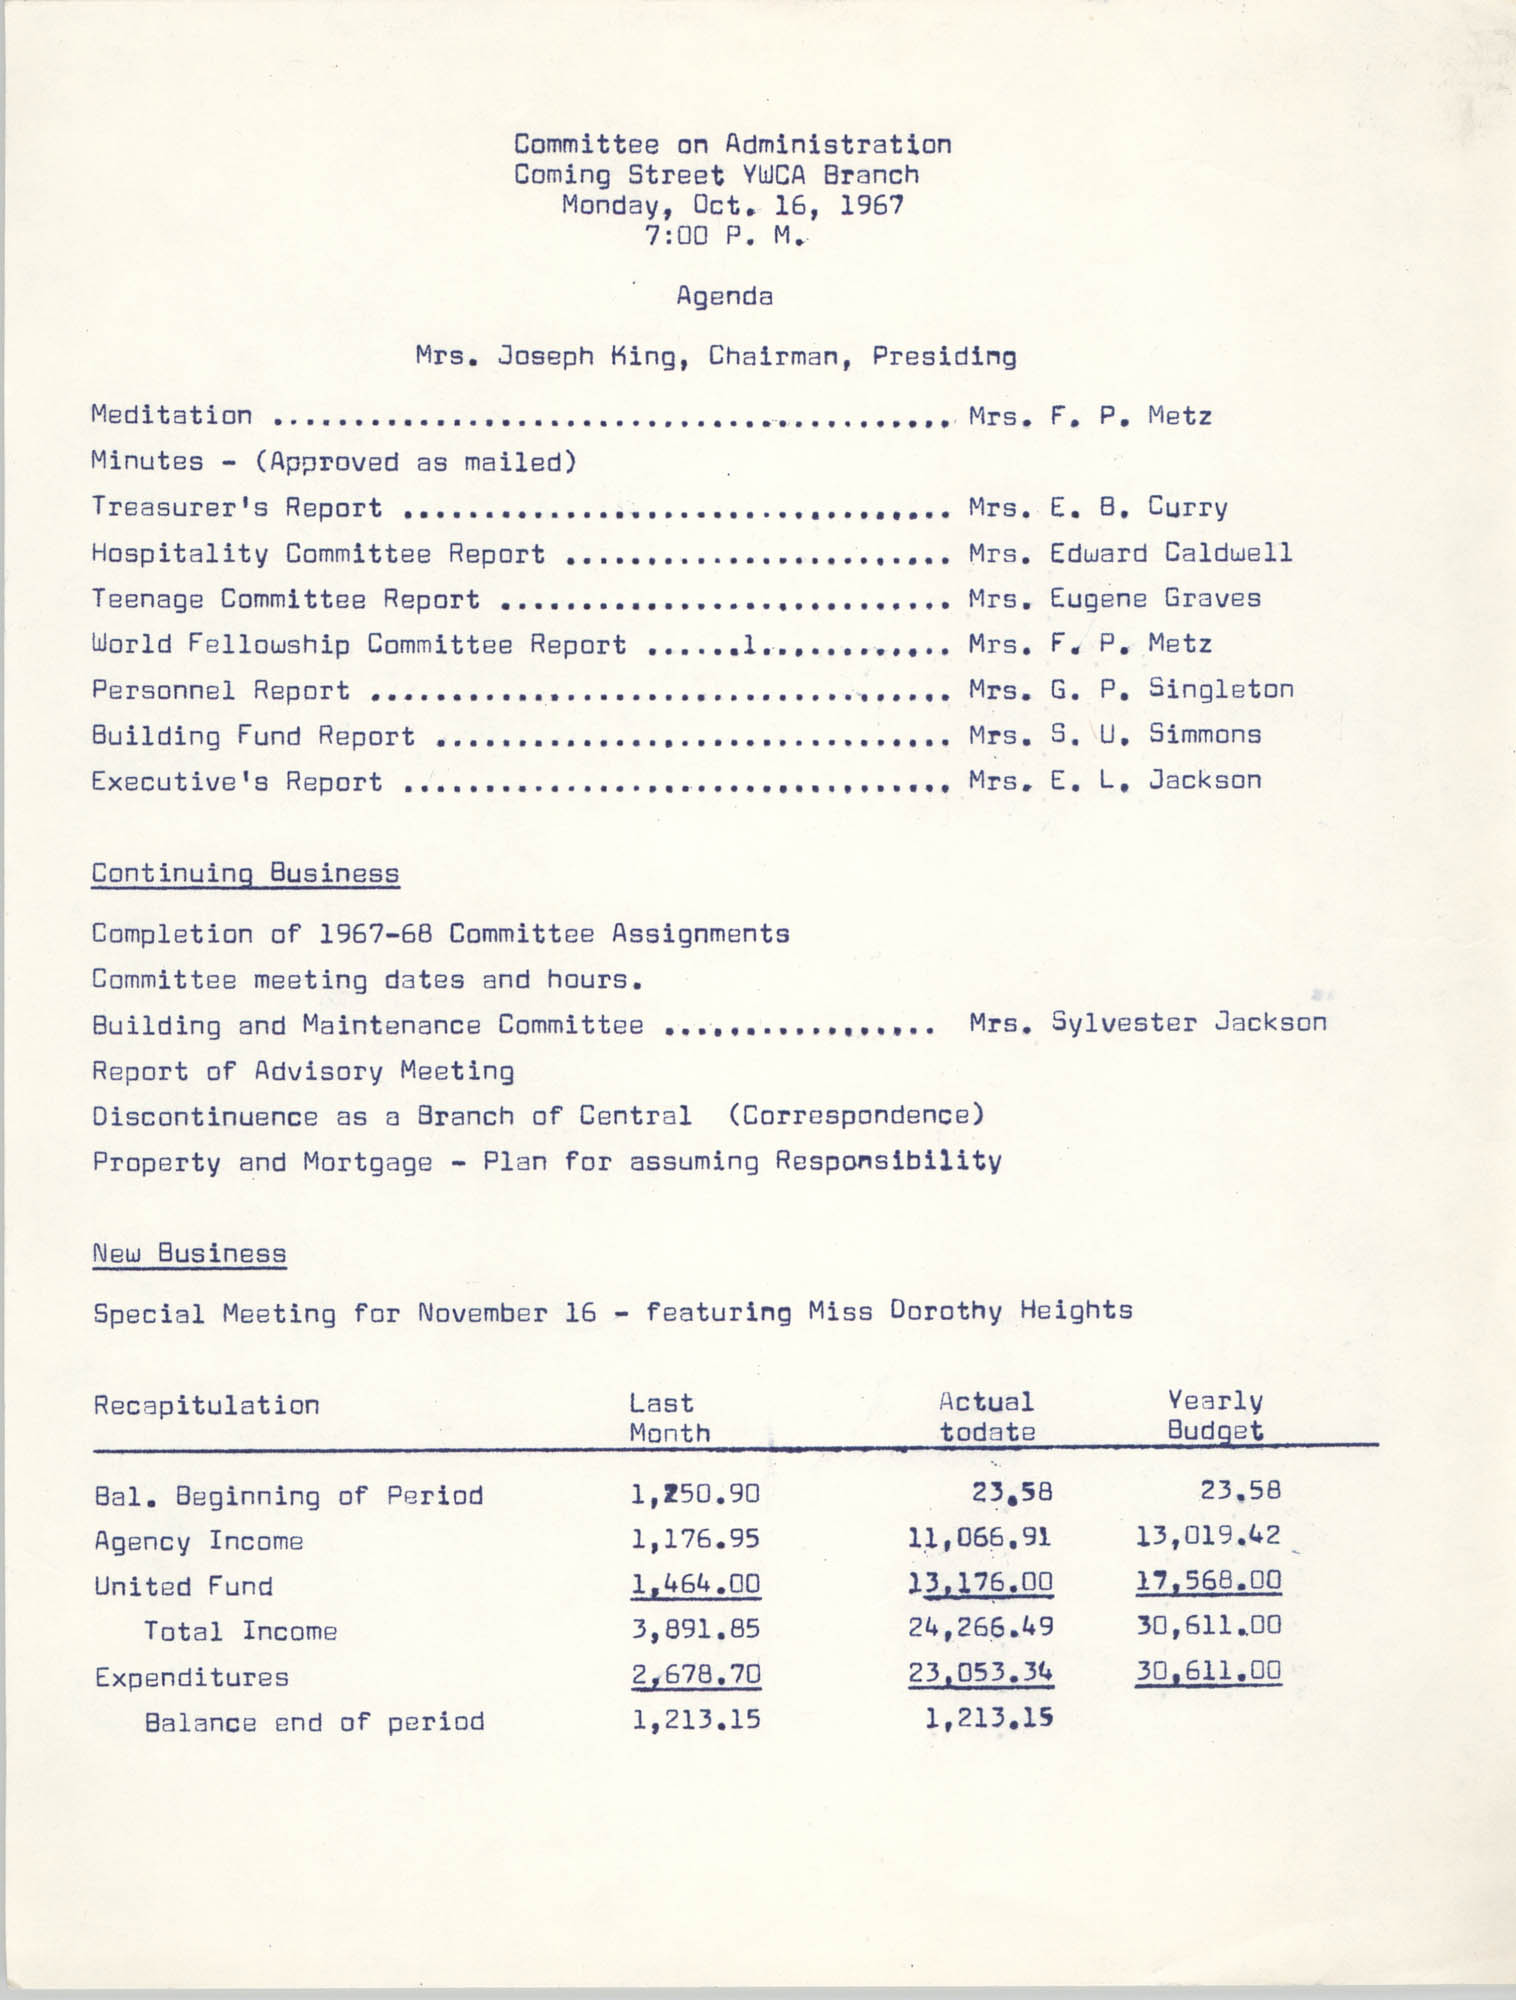 Agenda, Coming Street Y.W.C.A. Committee on Administration Meeting, October 16, 1967